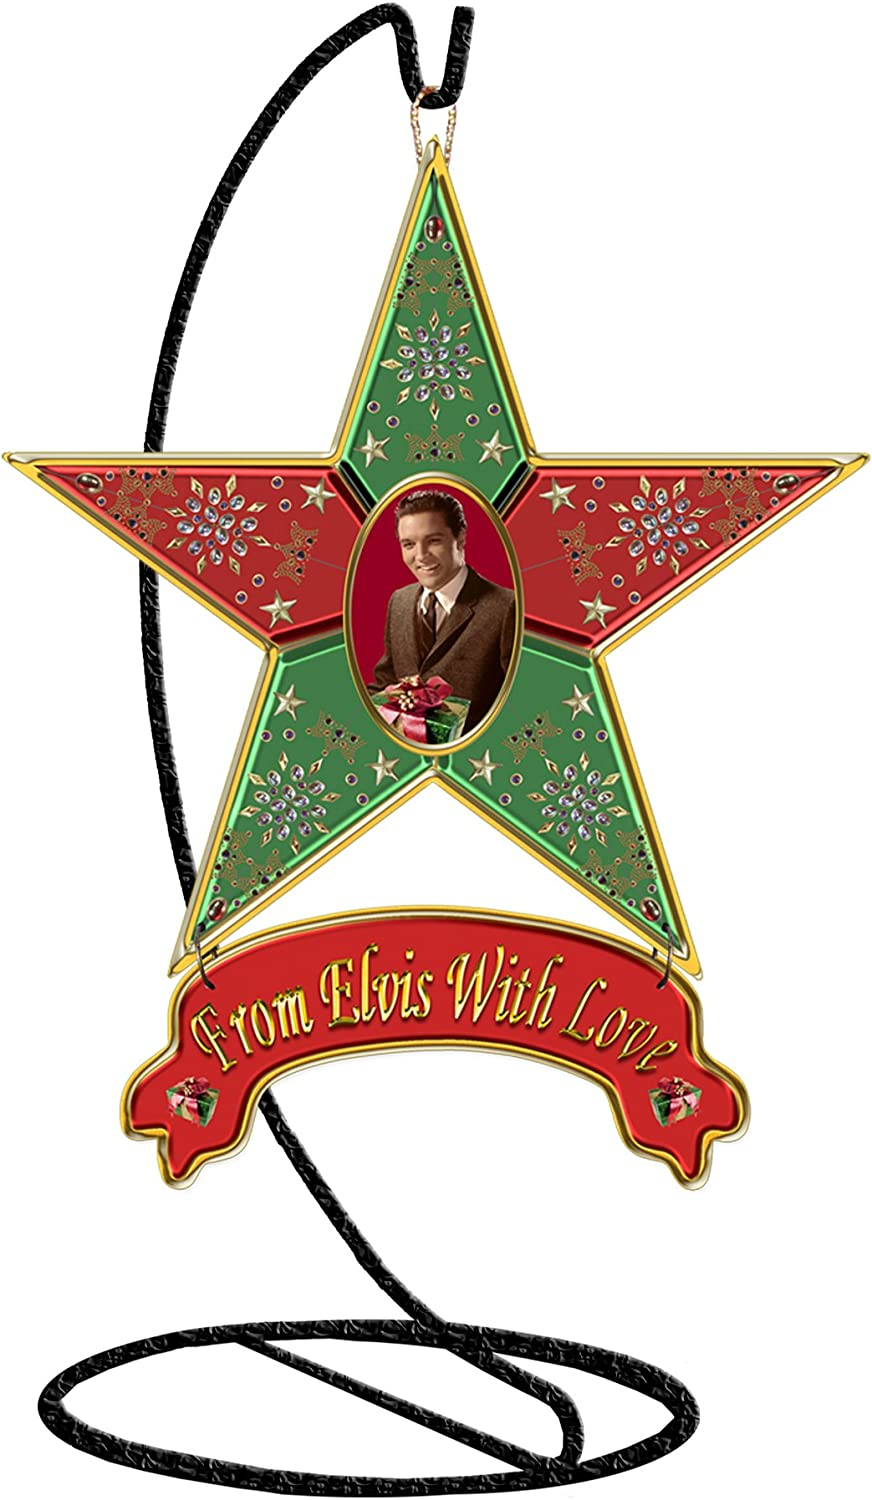 The Craft Room 30007 Freeform Designs From Elvis with Love, Elvis Mini Star 6-Inch by 5-Inch Licensed Elvis Resin Star